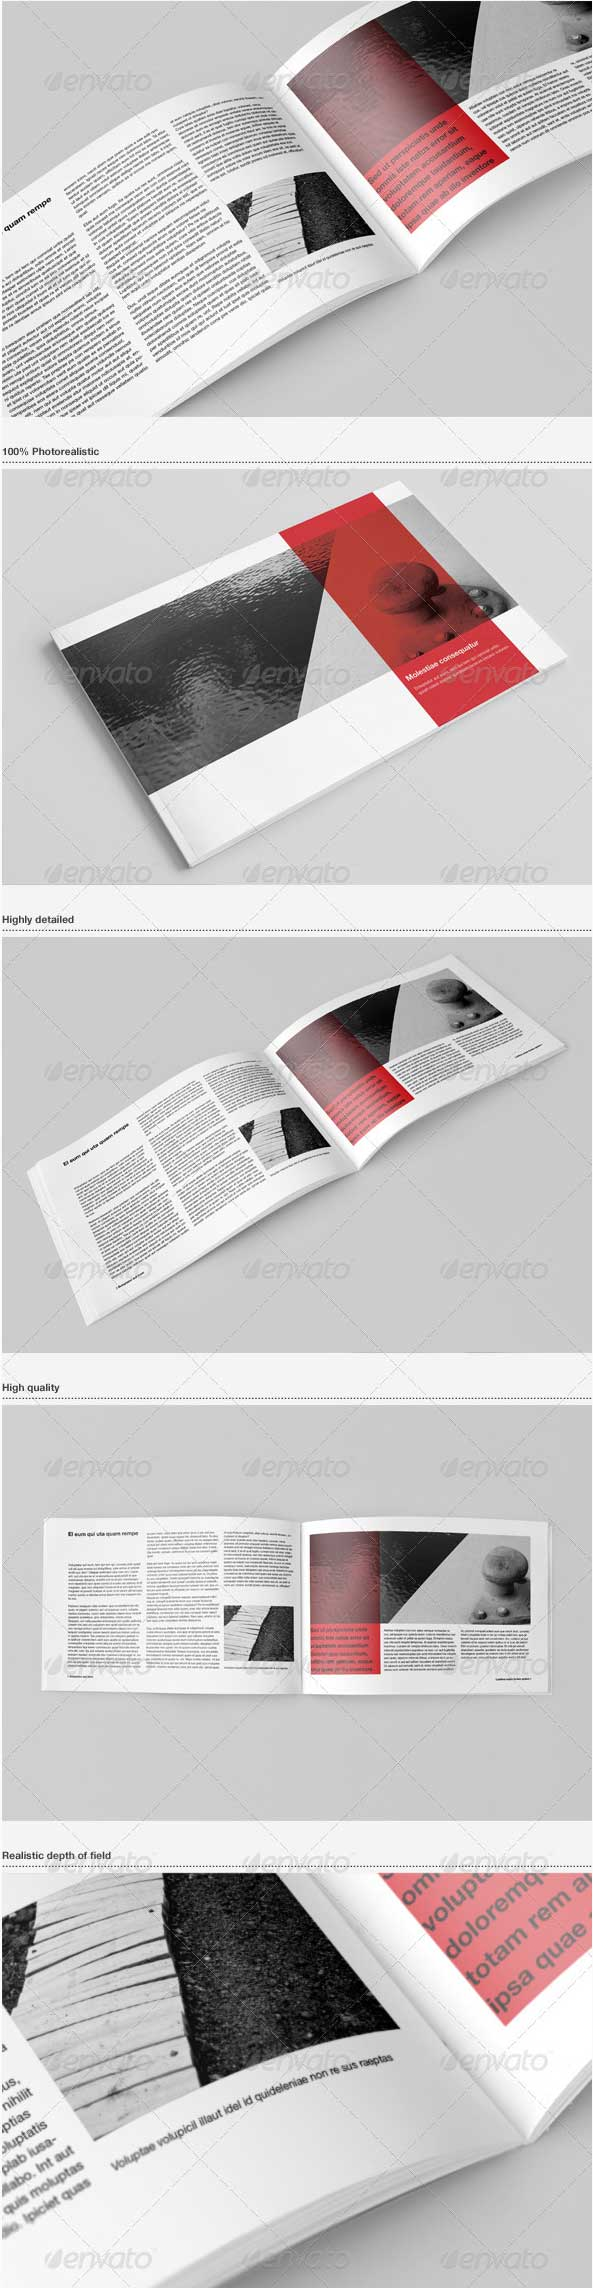 brochure-catalog-mock-up